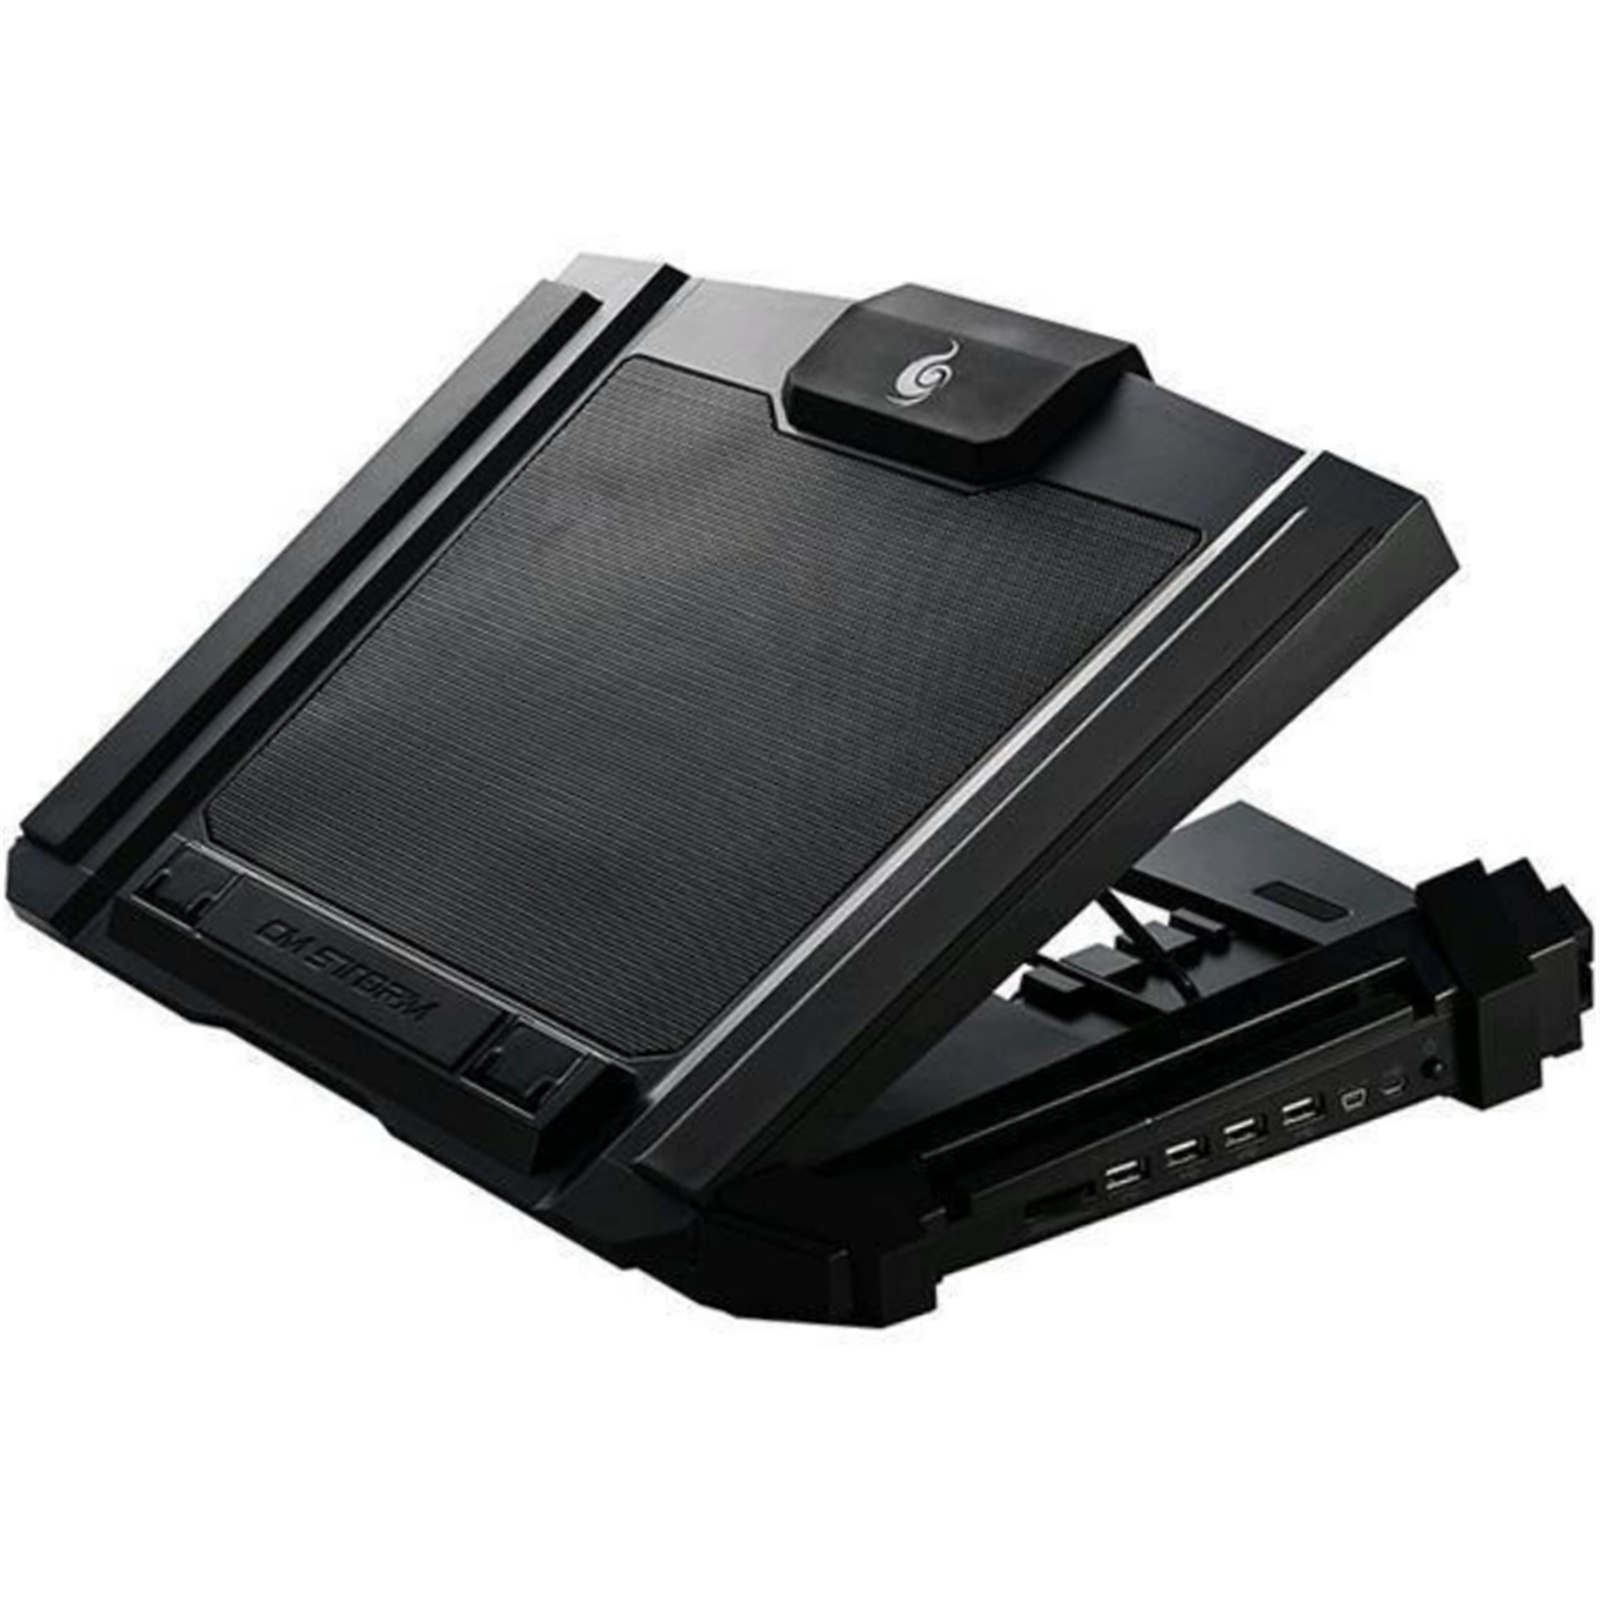 Buy The Cooler Master Gaming Sf 17 Laptop Cooling Pad Silent